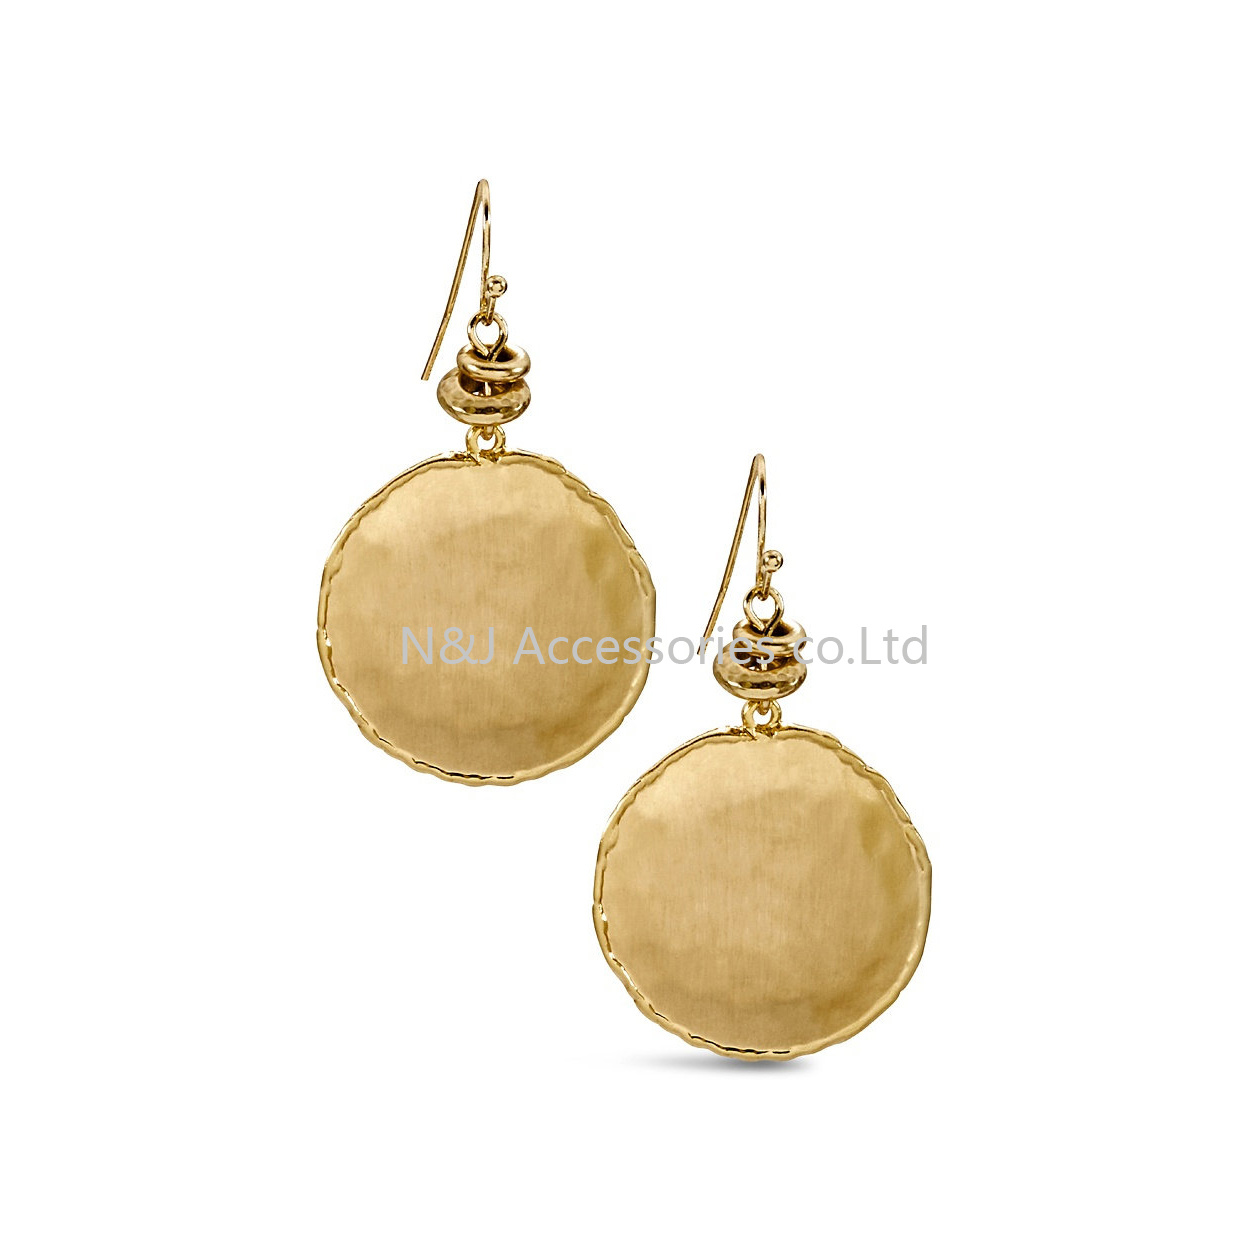 Gold Plated Round Earrings Fashion Jewelry for Women Alloy Stud Earring Women Gift